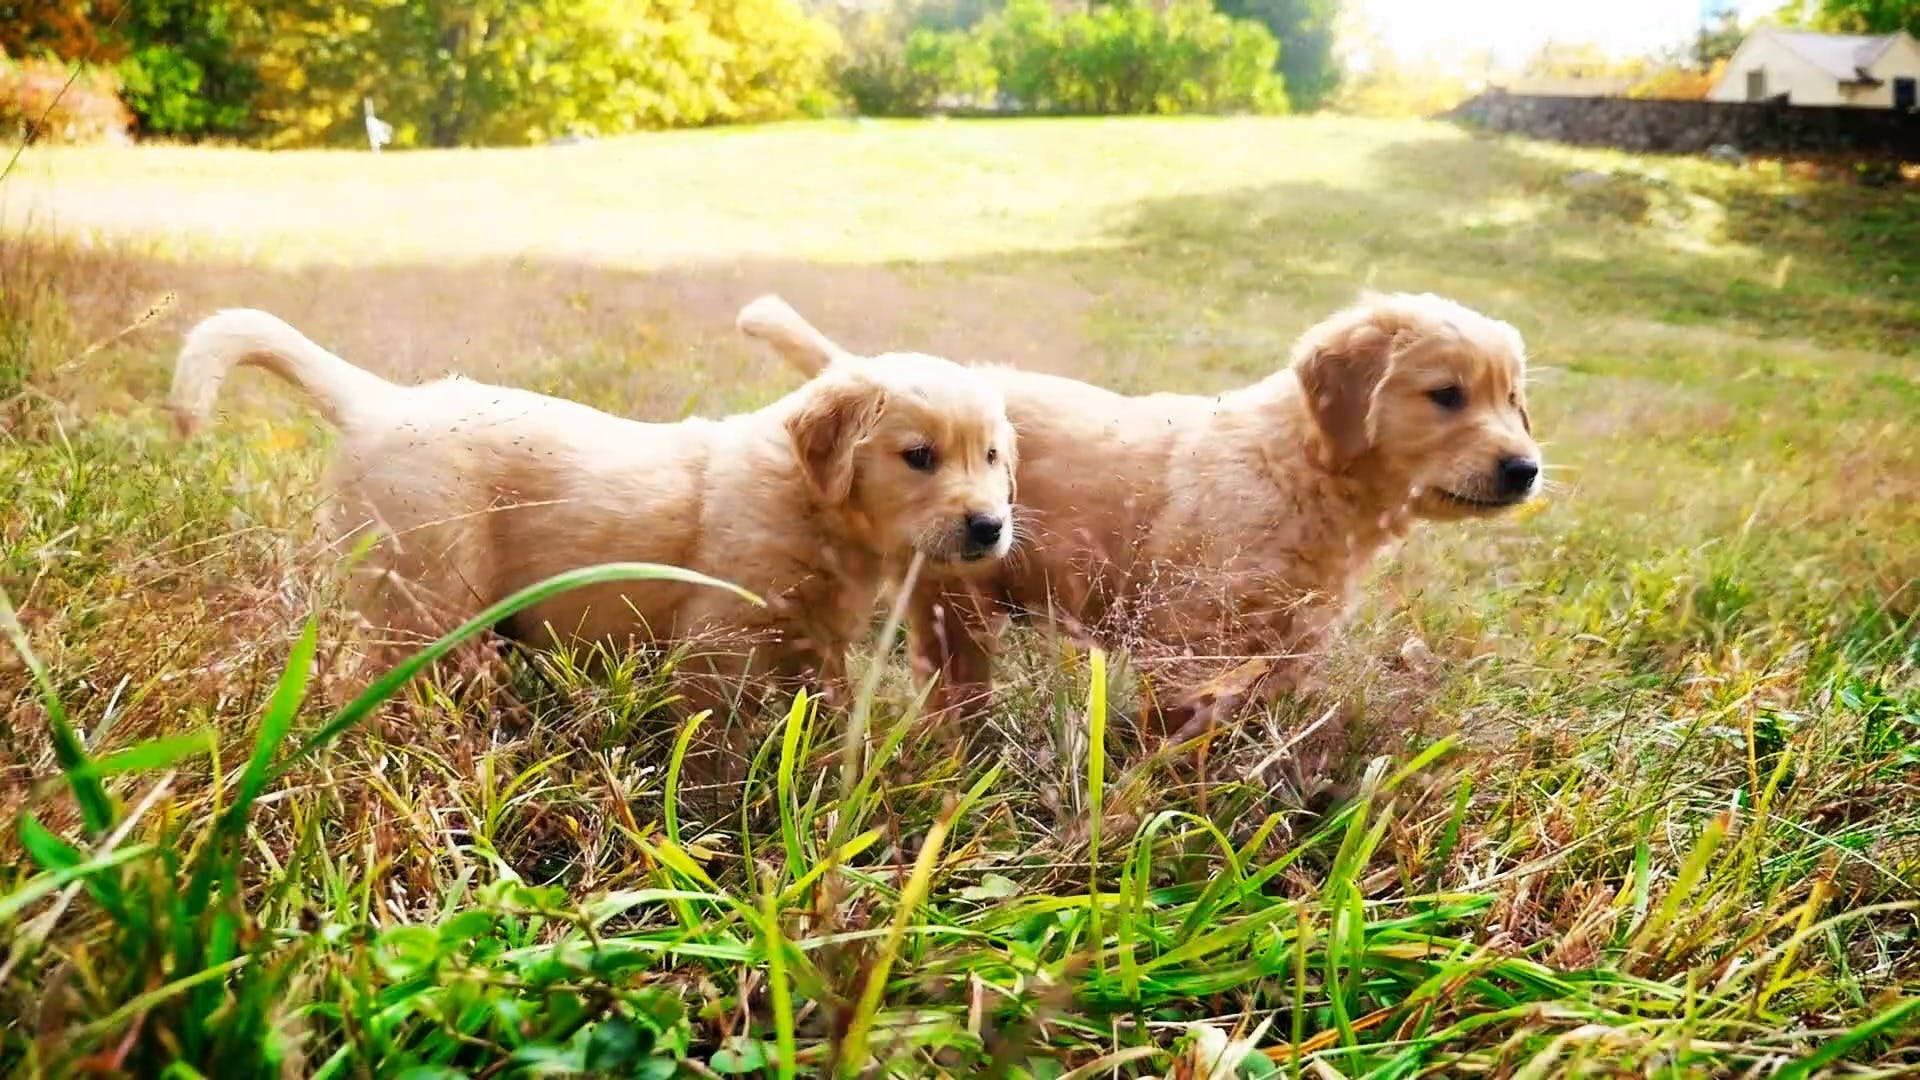 The Cutest Puppies - The Cutest Golden Retriever Puppies | AKC.TV